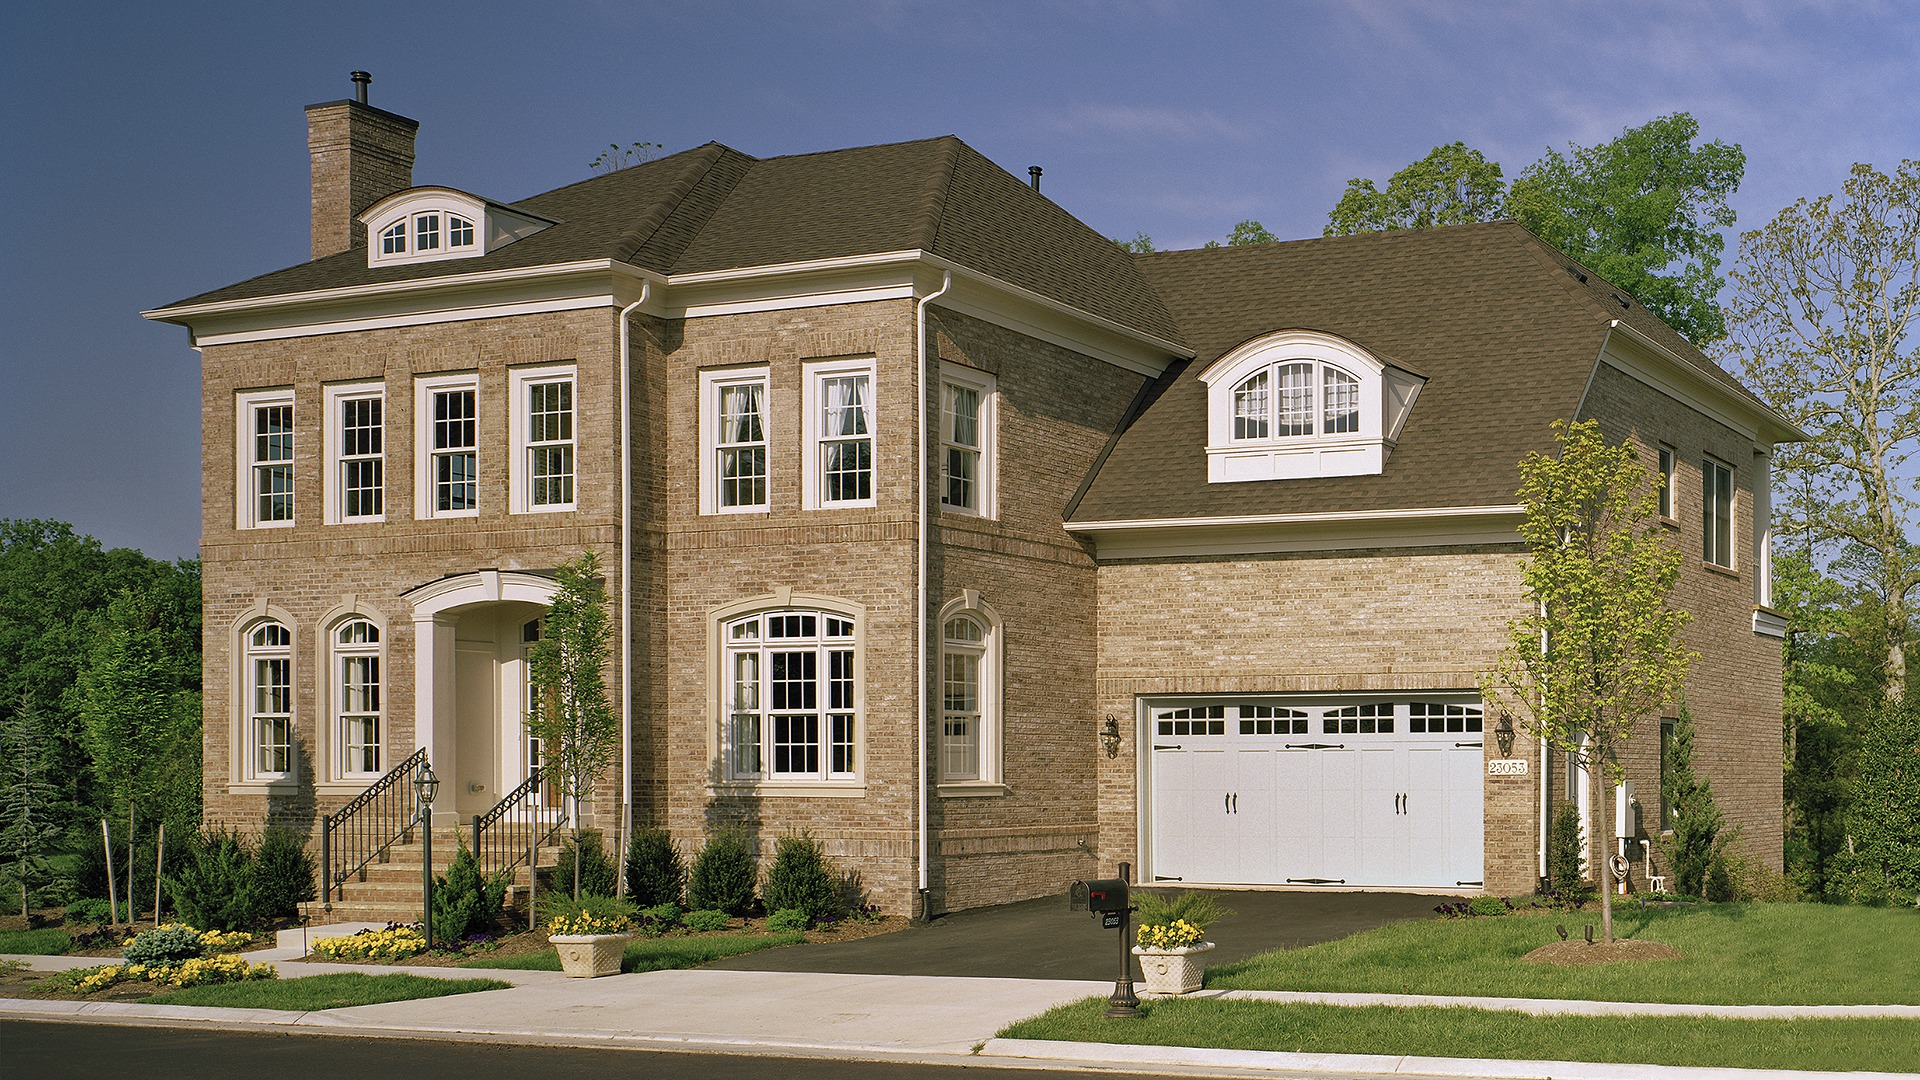 The Front Elevation of the Ashcroft model in Brambleton. Some options shown.